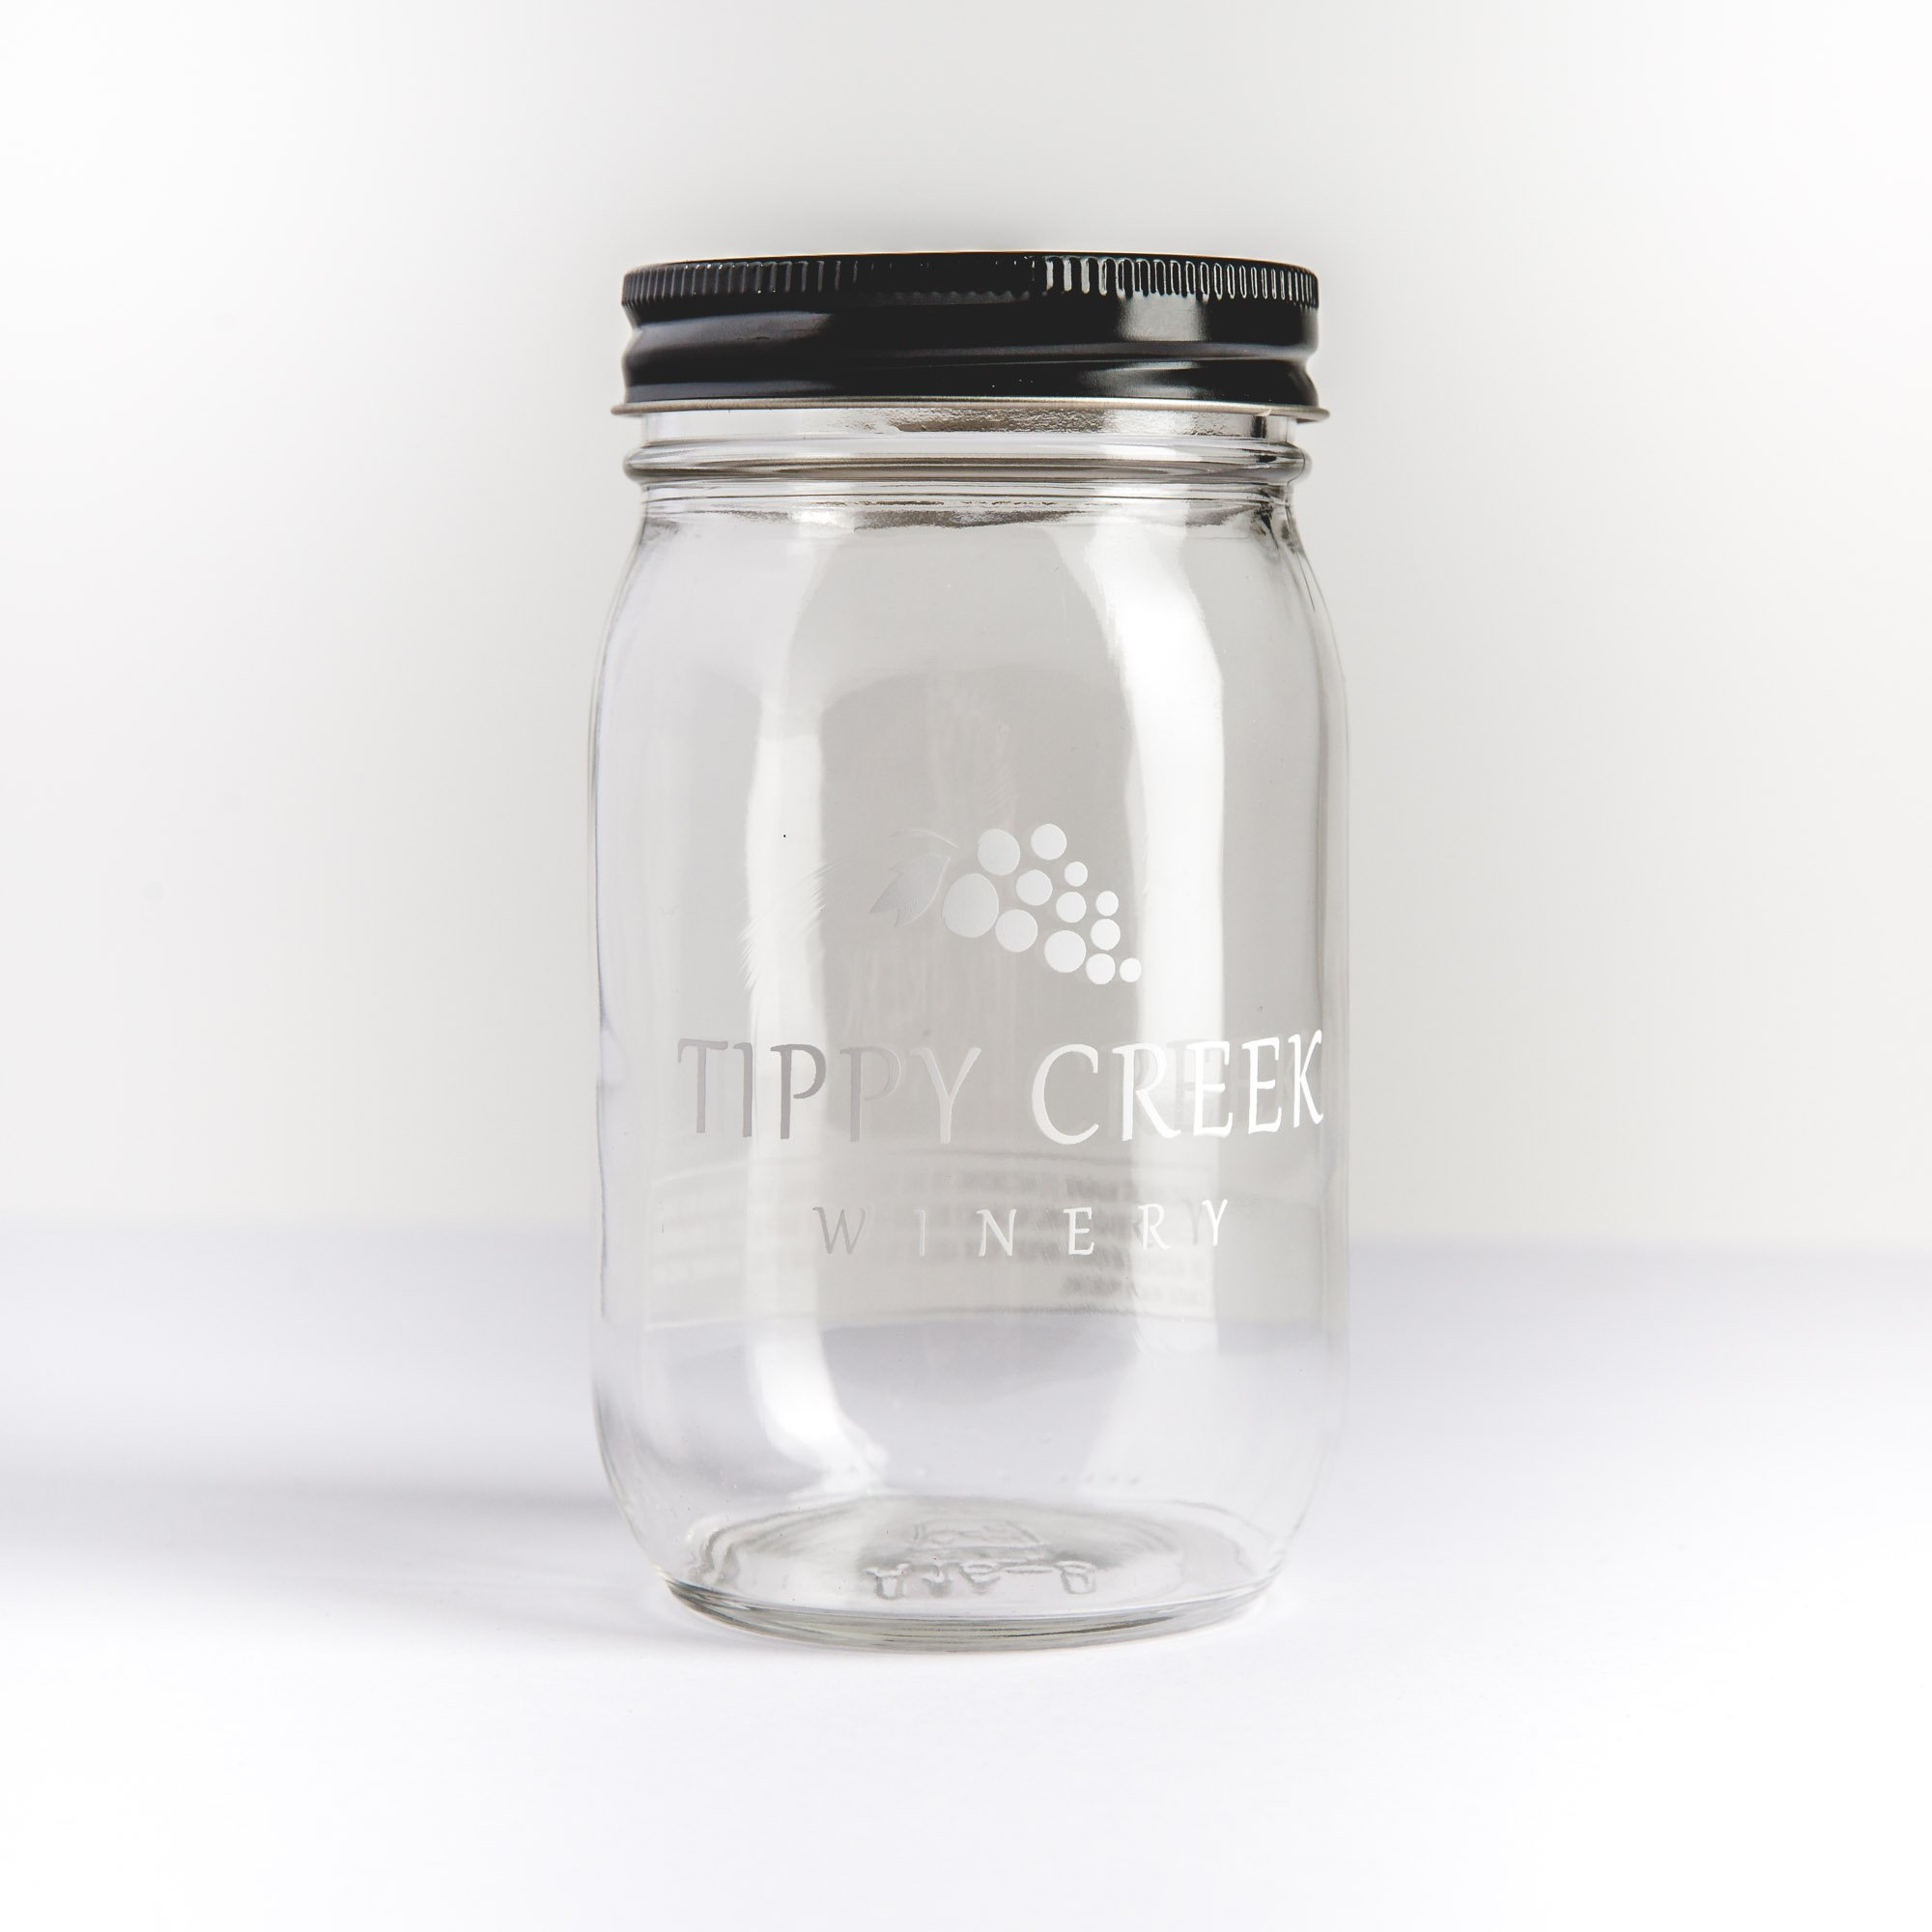 Tippy Creek Winery Mason Jar